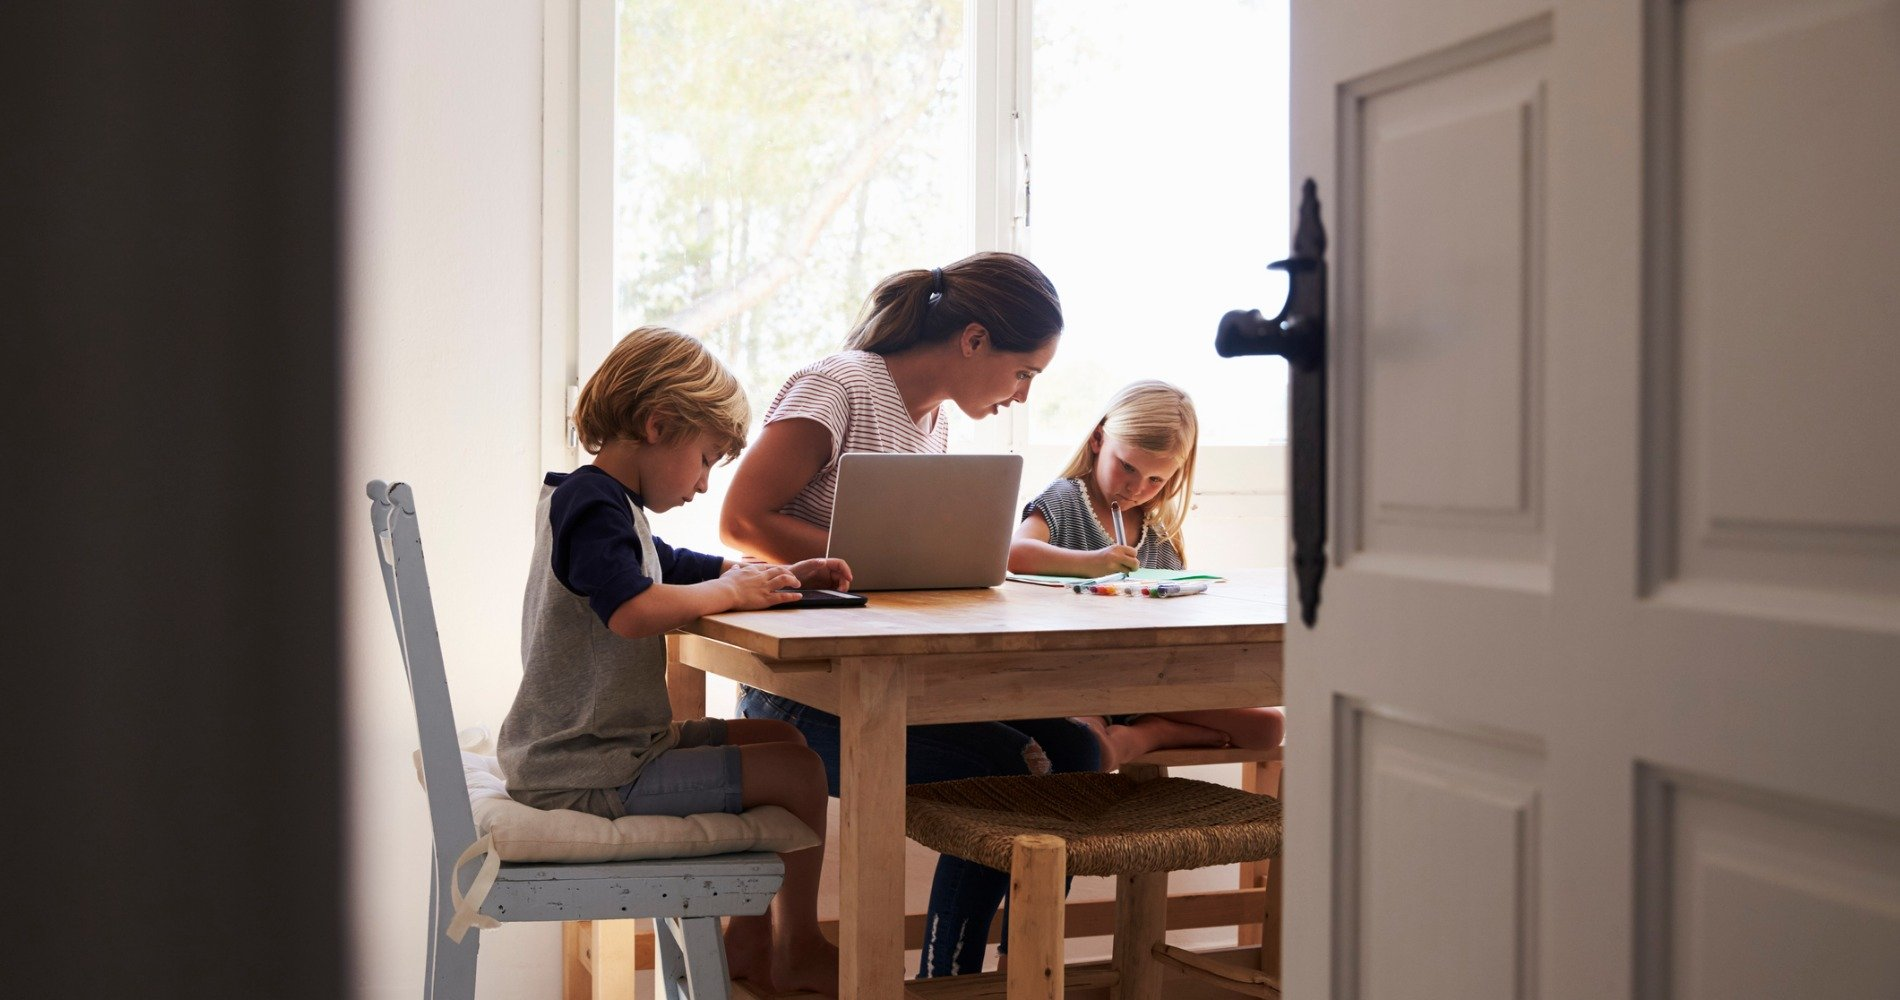 Family working on homework together at a kitchen table